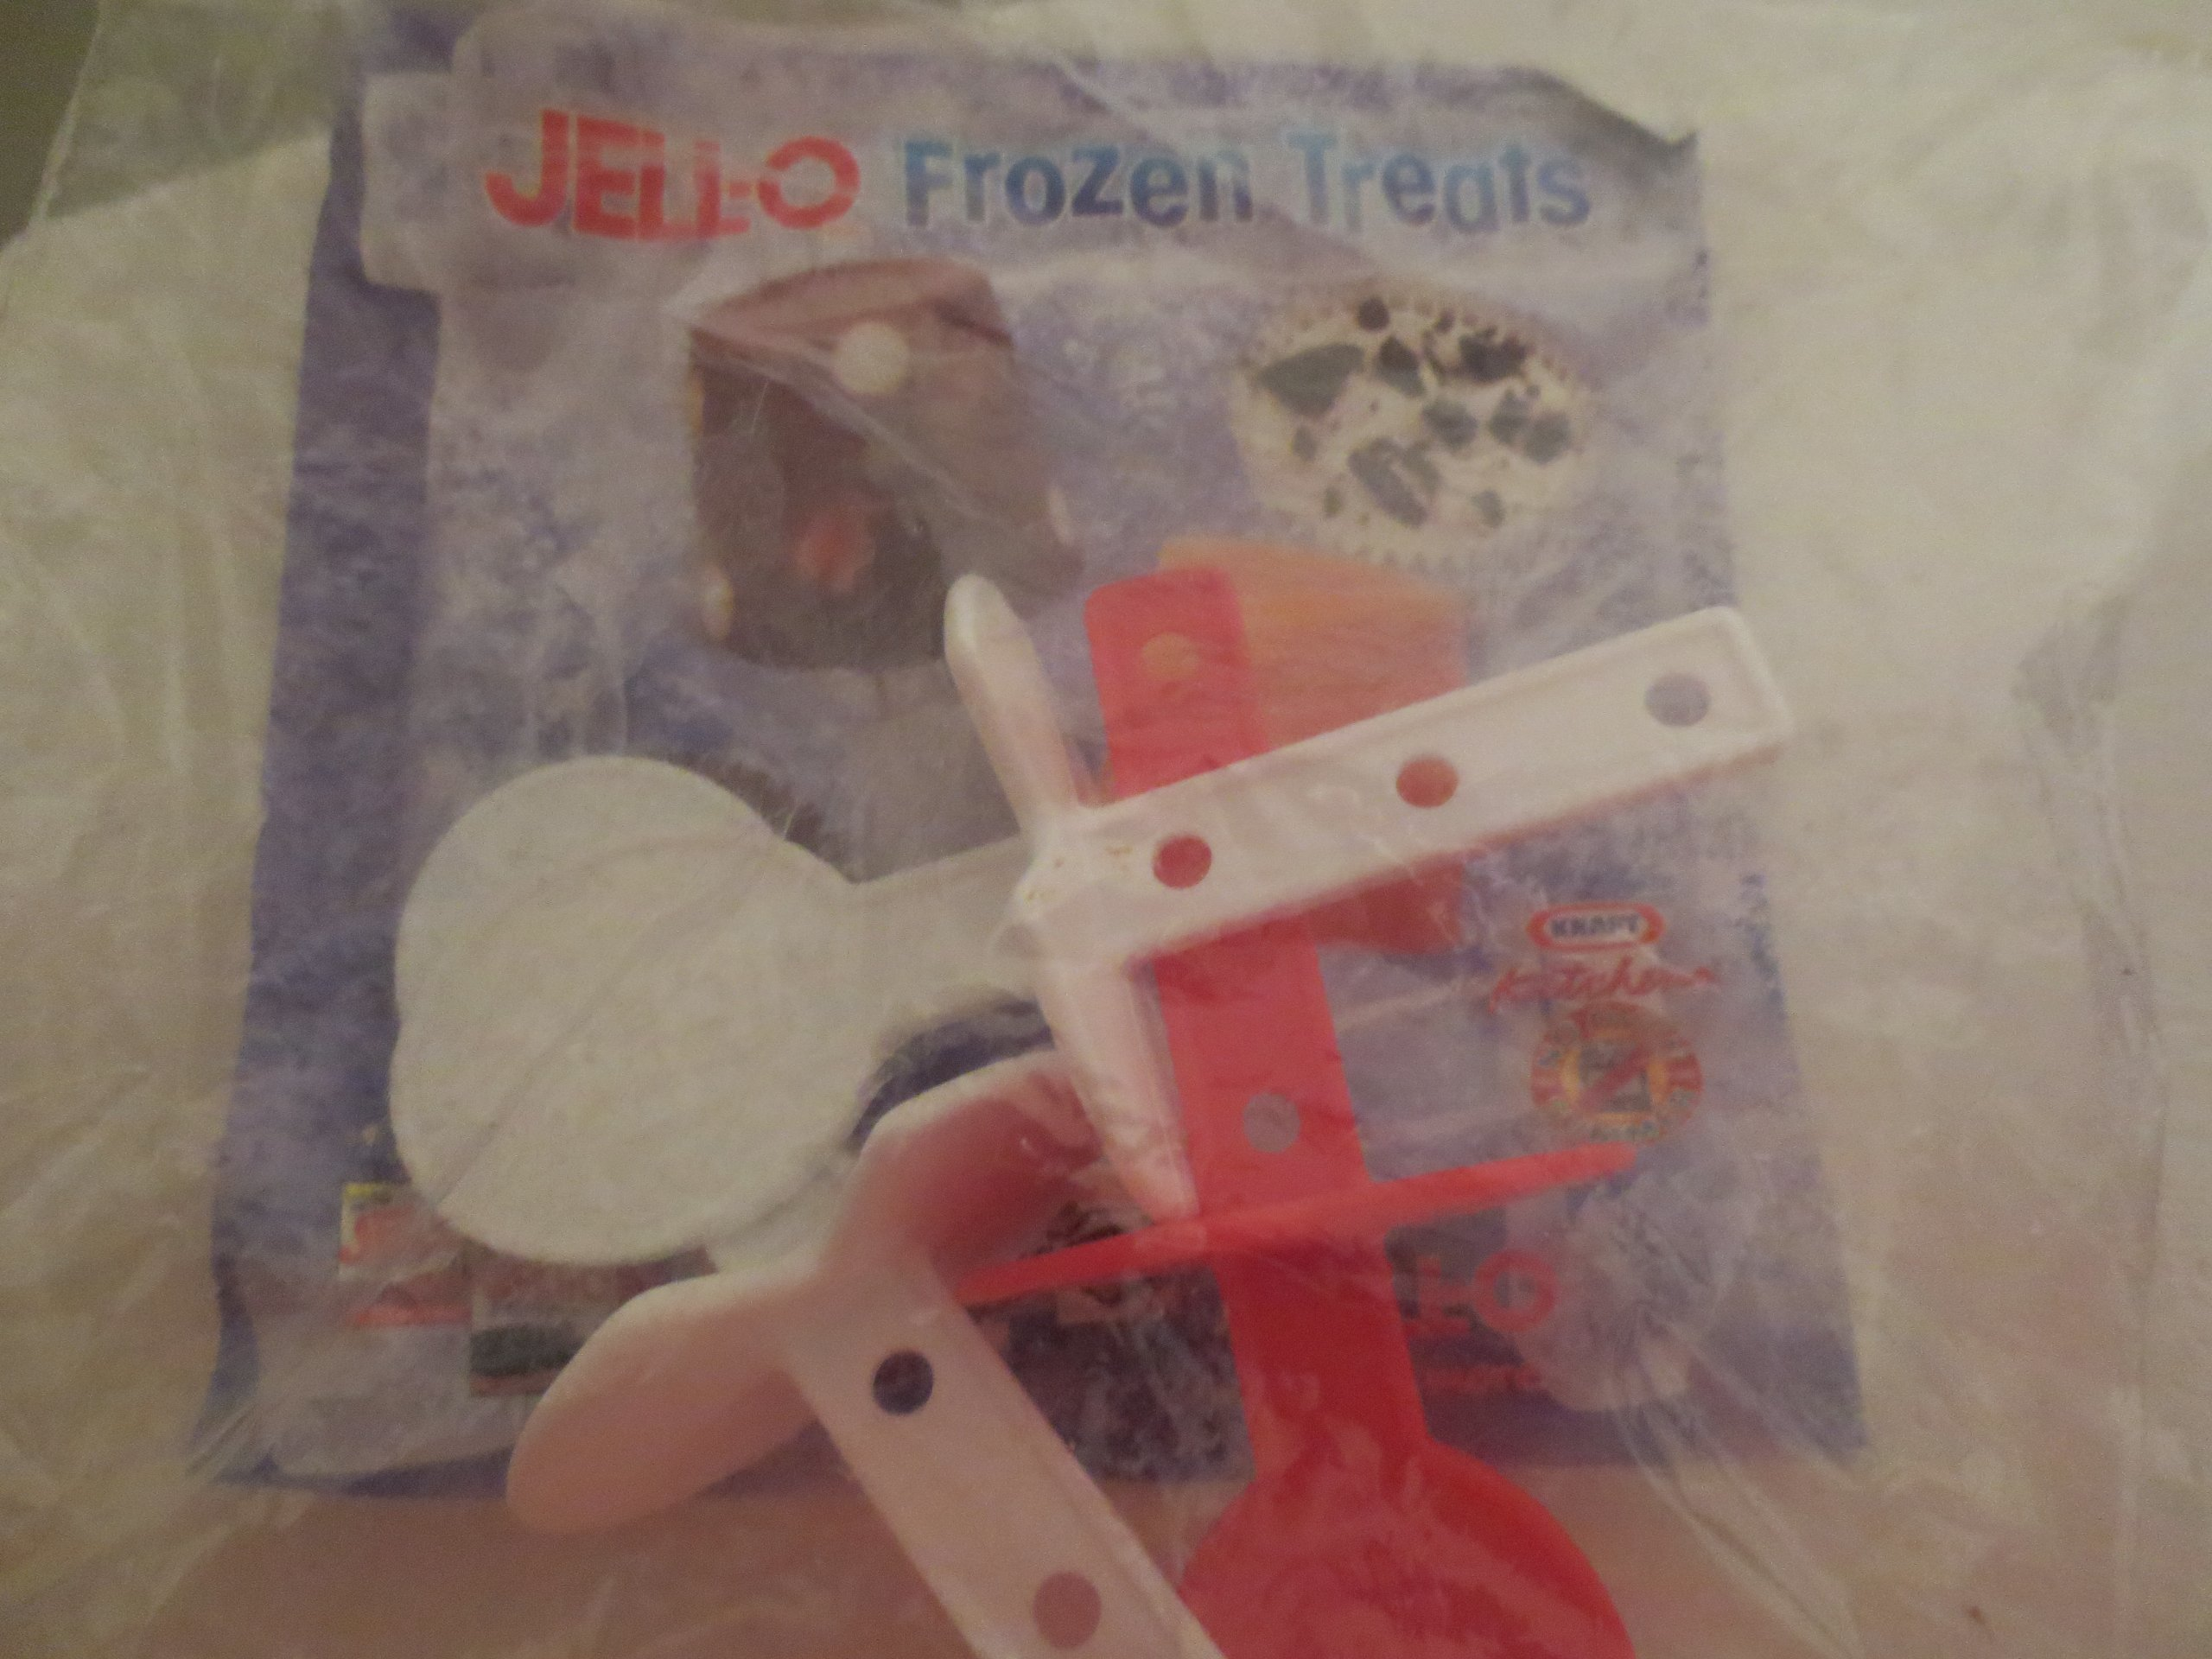 Jell-o Frozen Treats ... Jello Pops Sticks